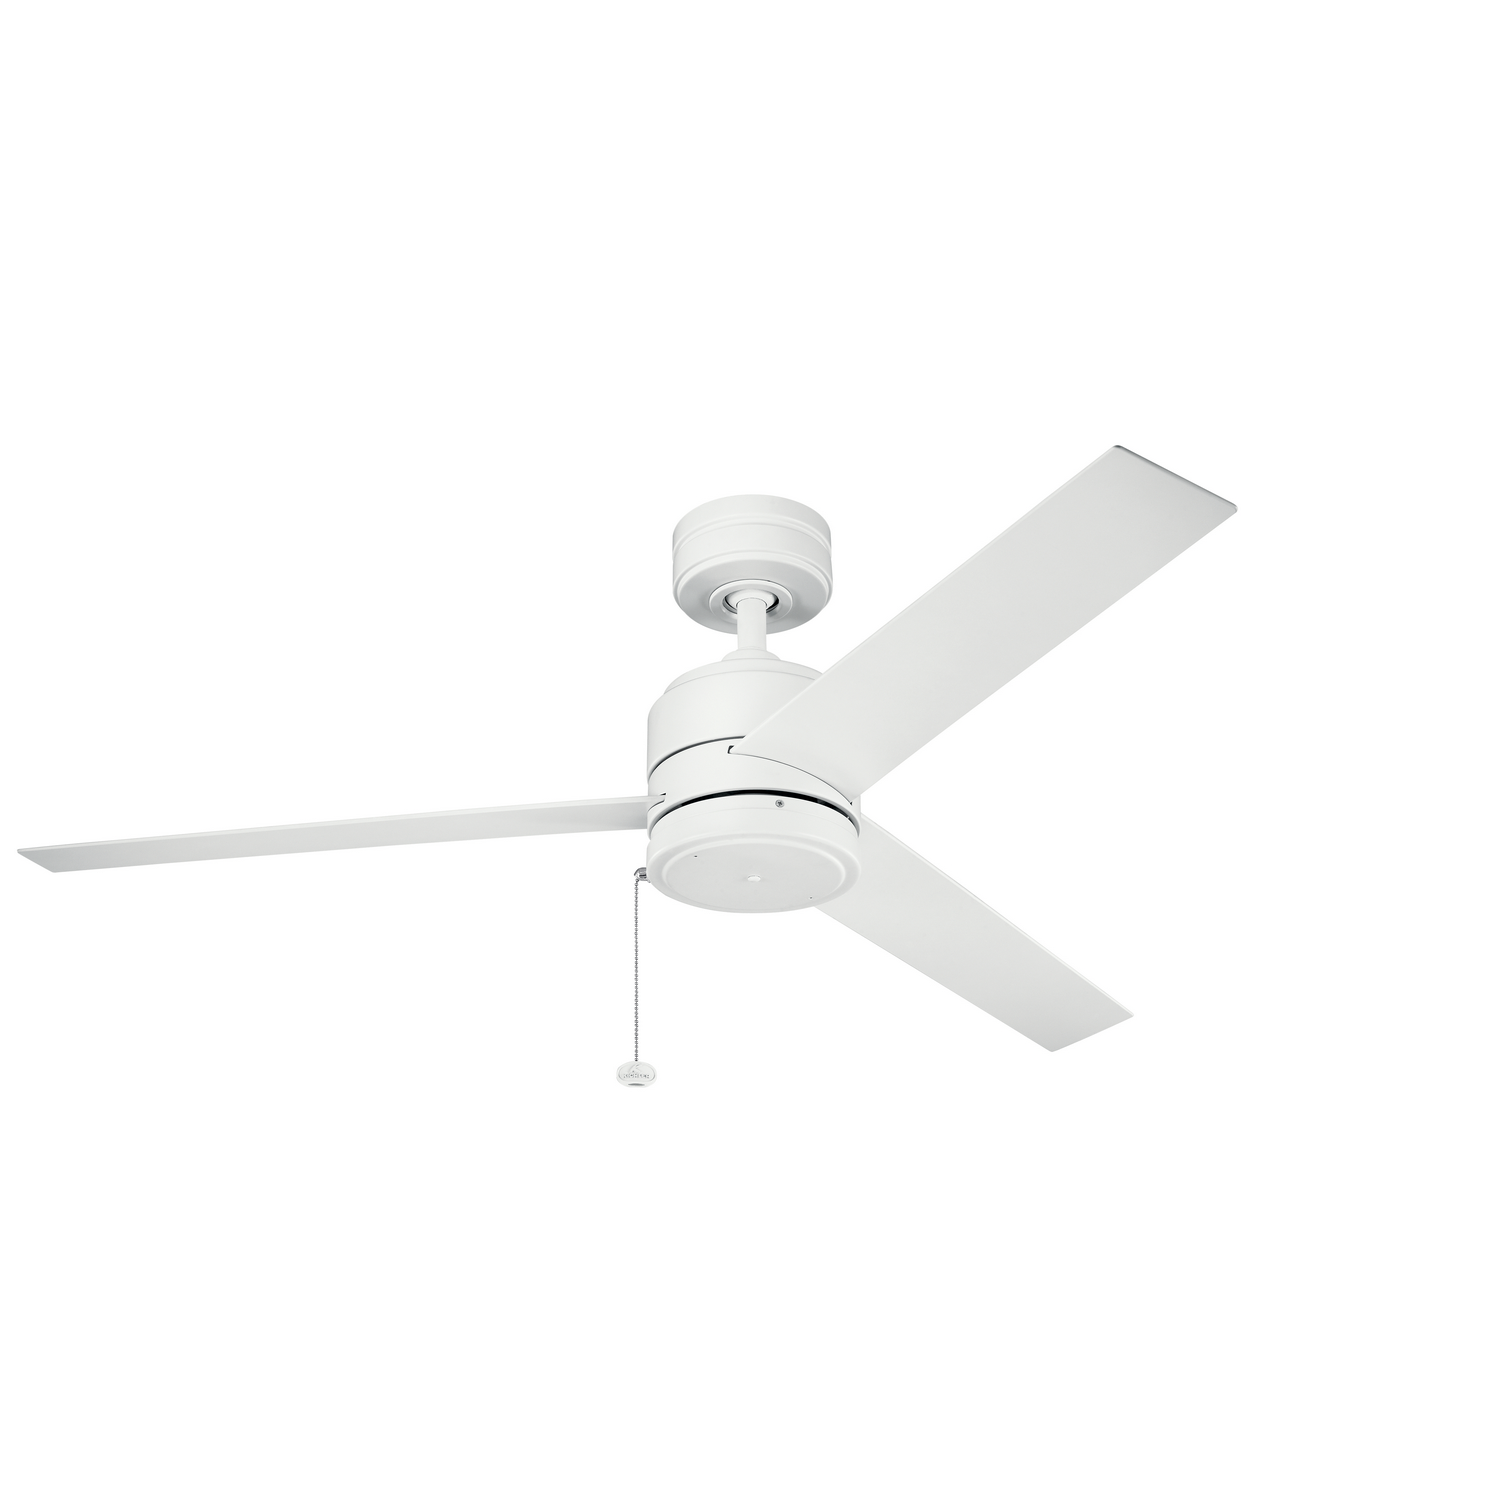 52 inchCeiling Fan from the Arkwet collection by Kichler 339629MWH